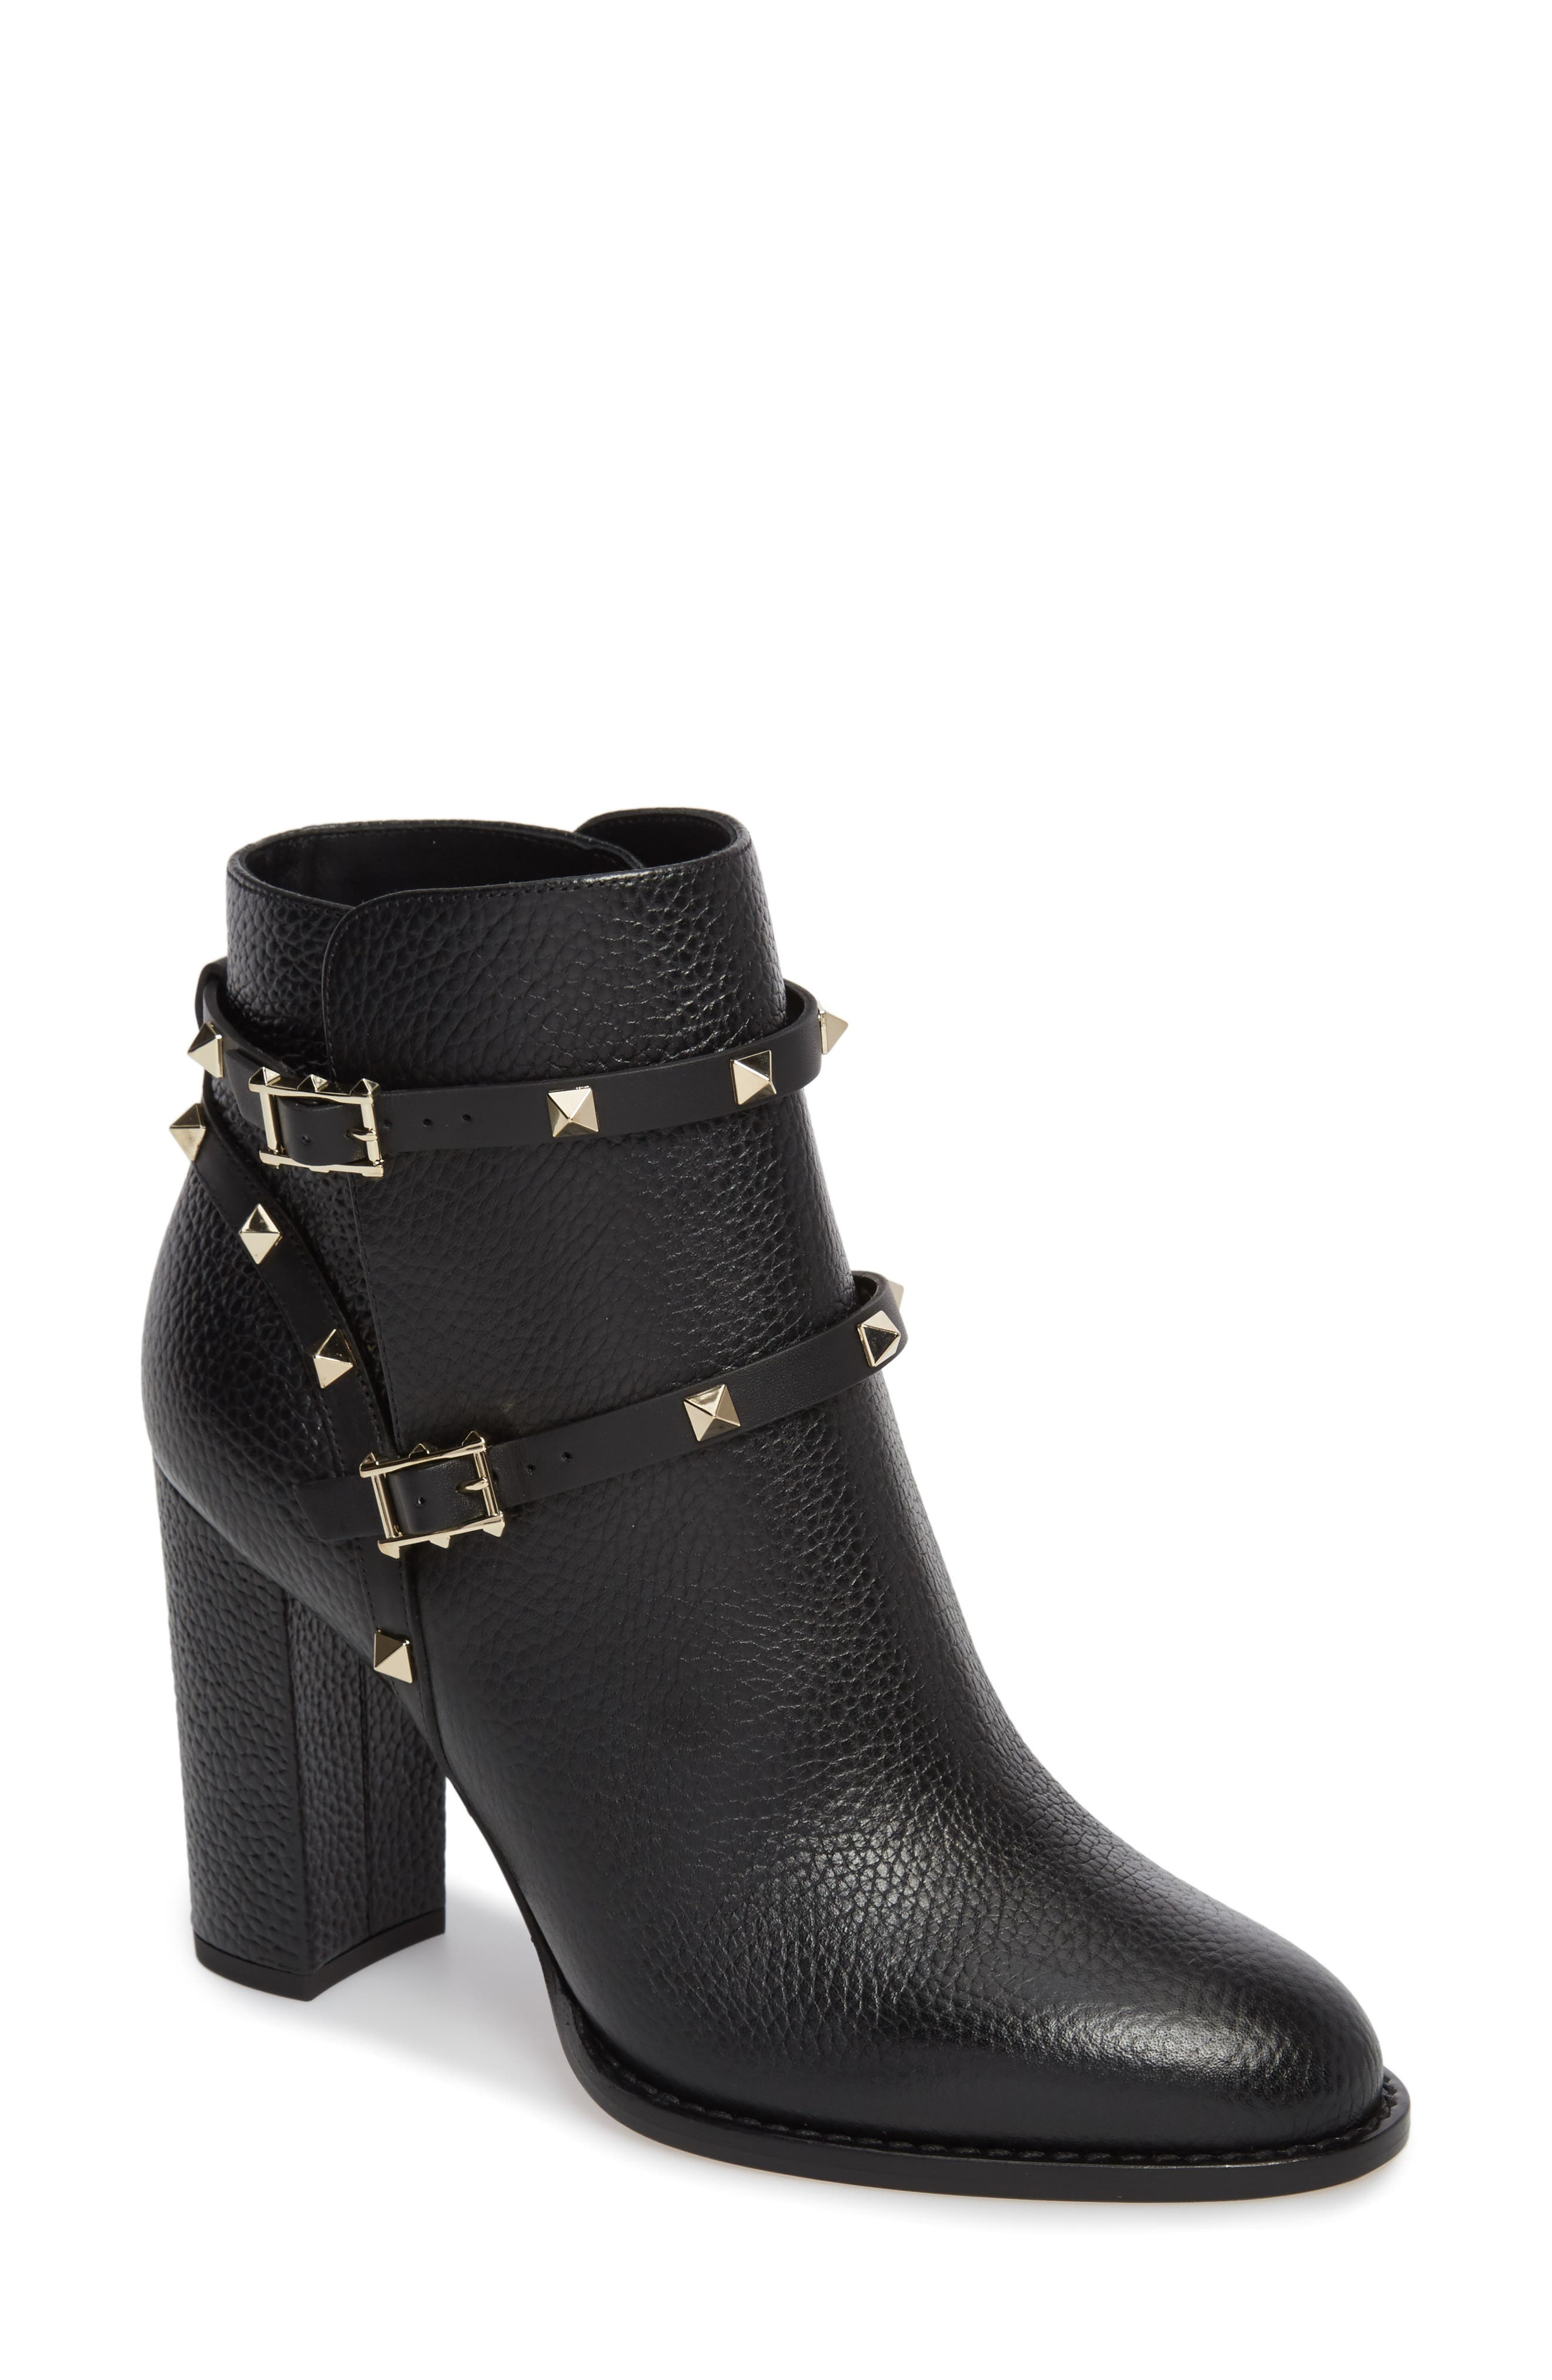 'Rockstud' Block Heel Bootie,                             Main thumbnail 1, color,                             BLACK